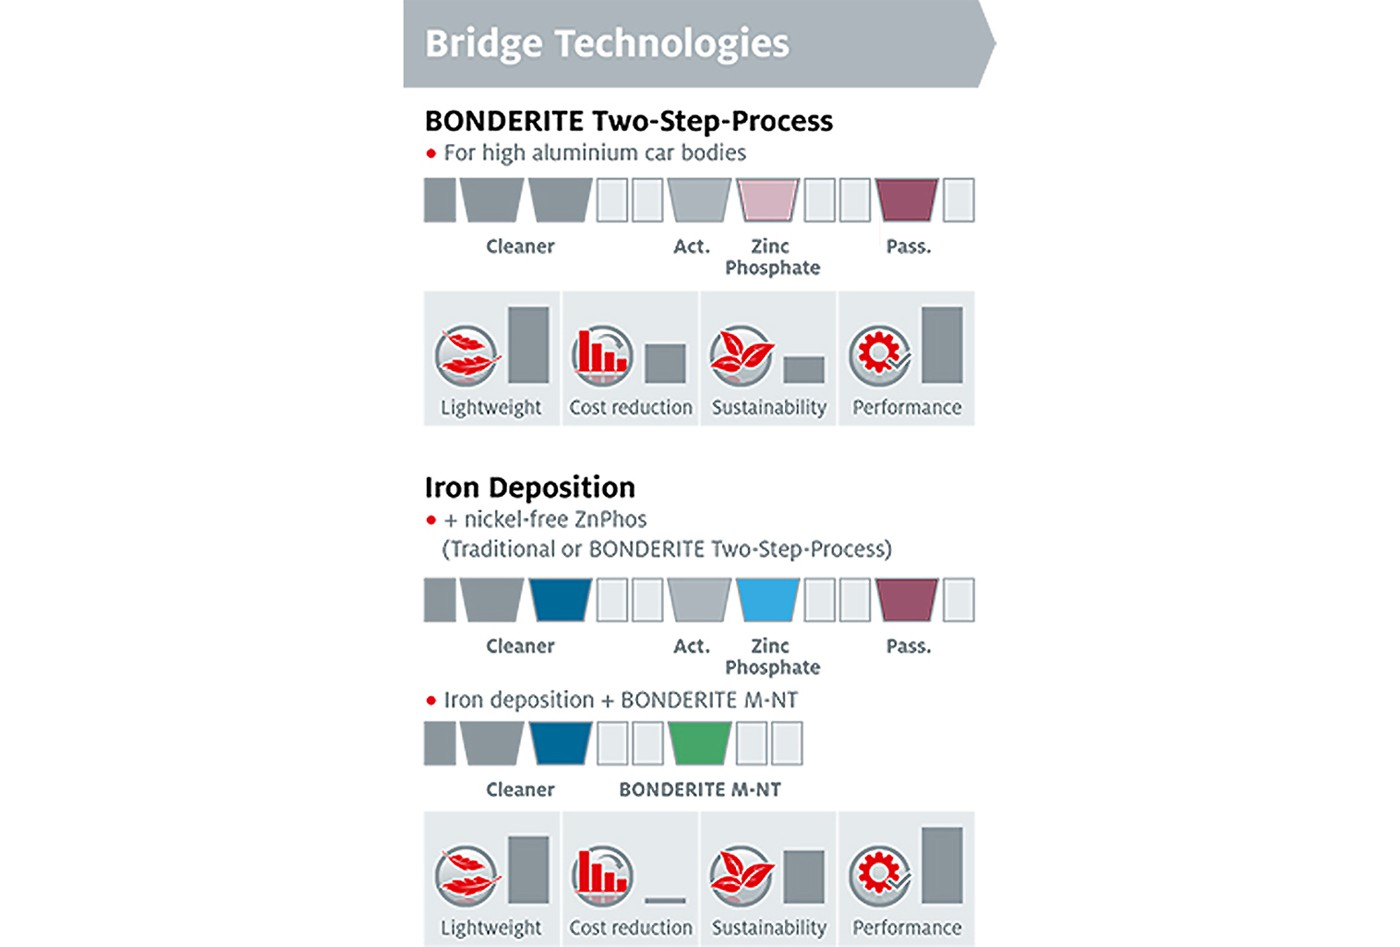 Infographic on the BONDERITE Two-Step Process and Iron Deposition